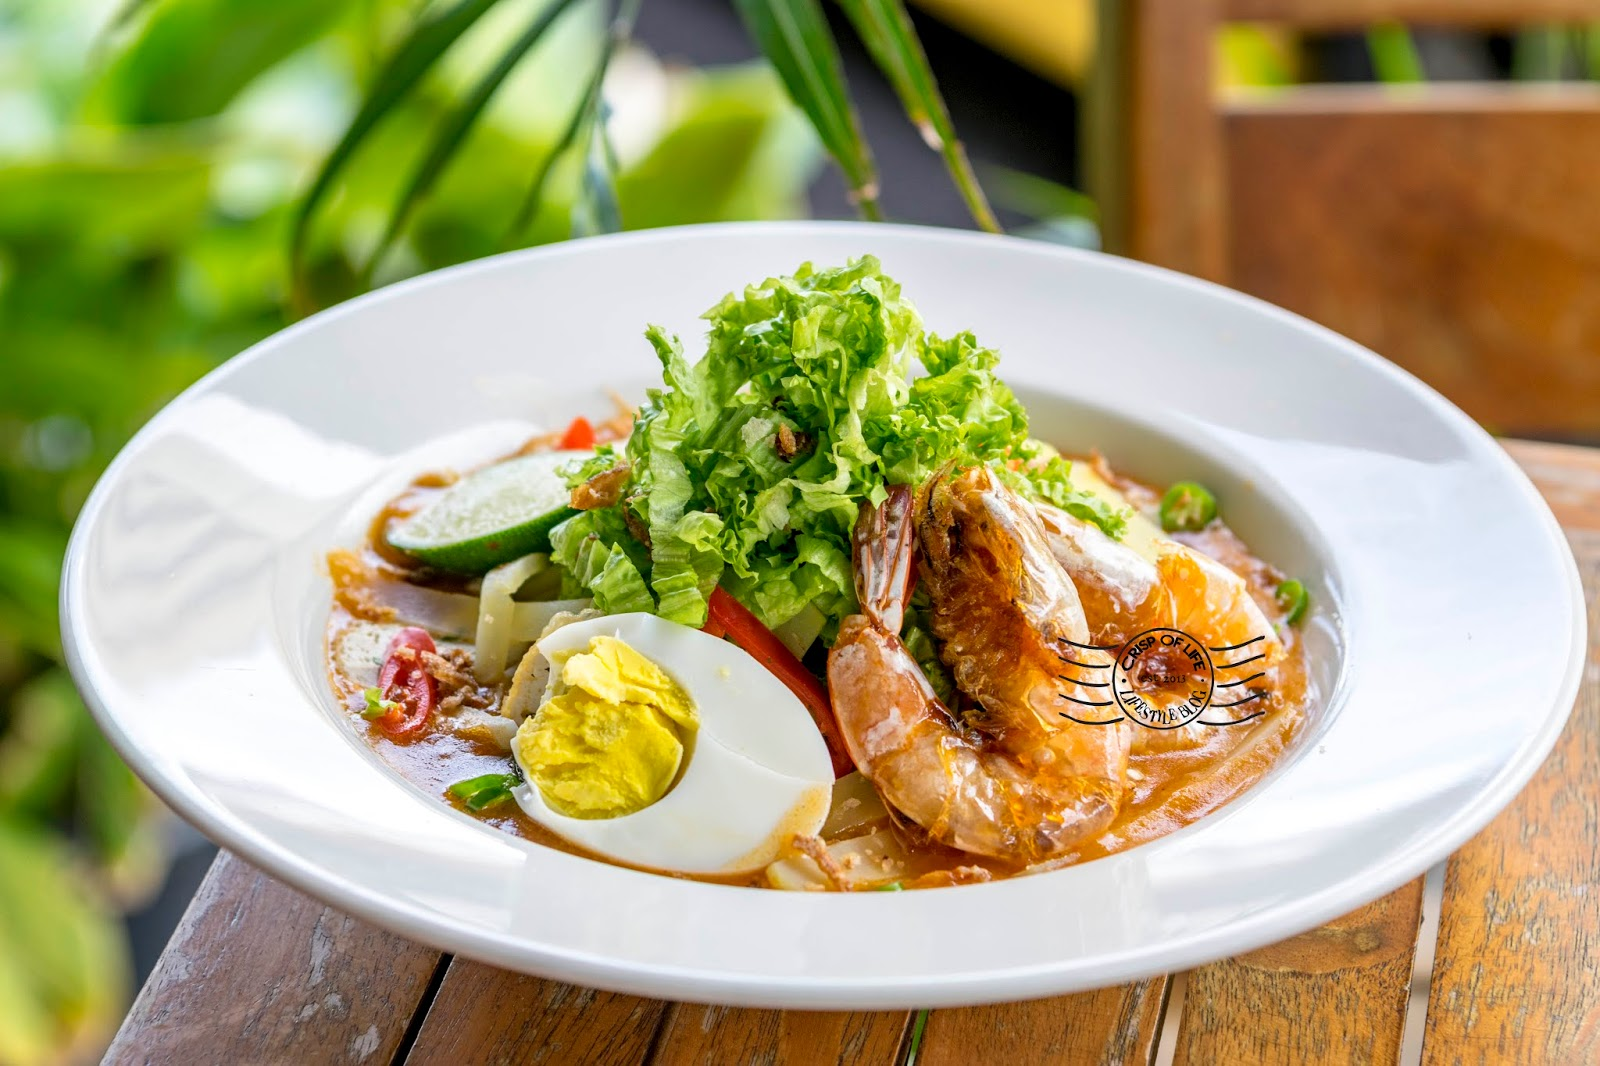 Viva Victoria at Beach Street Penang - A Premium Casual Restaurant With Round The World Cuisine